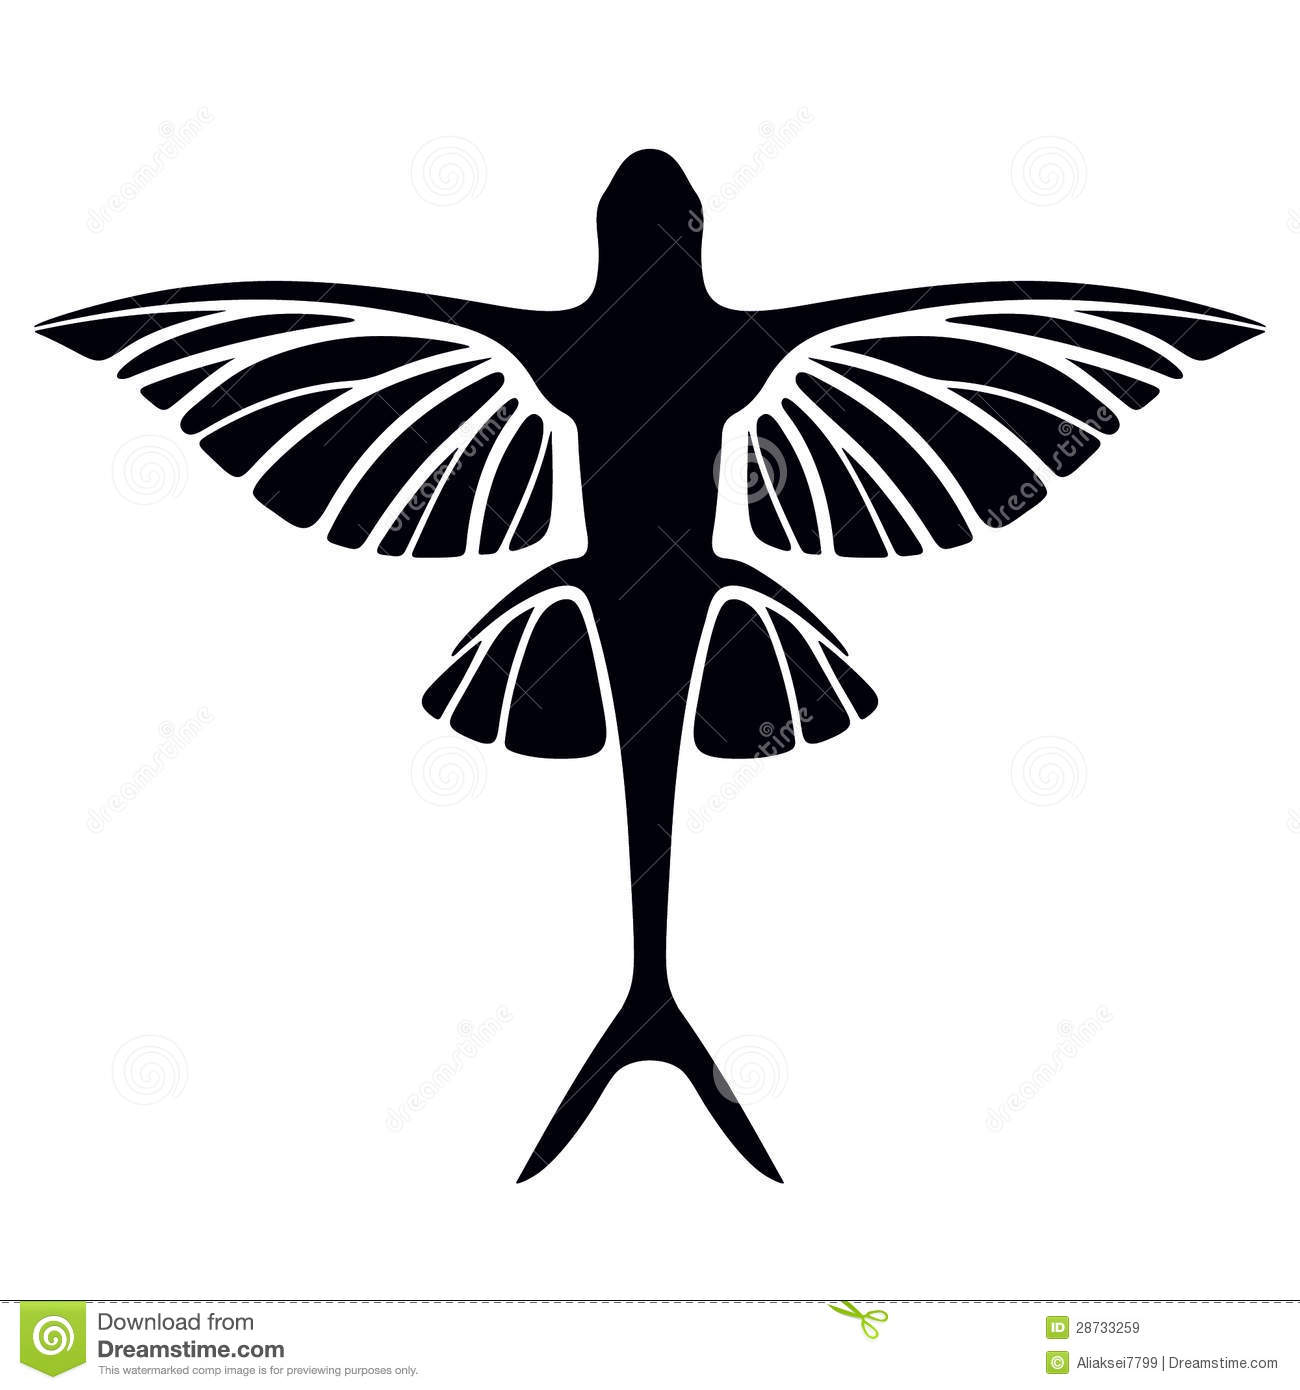 Flying Fish Royalty Free Stock Images - Image: 28733259